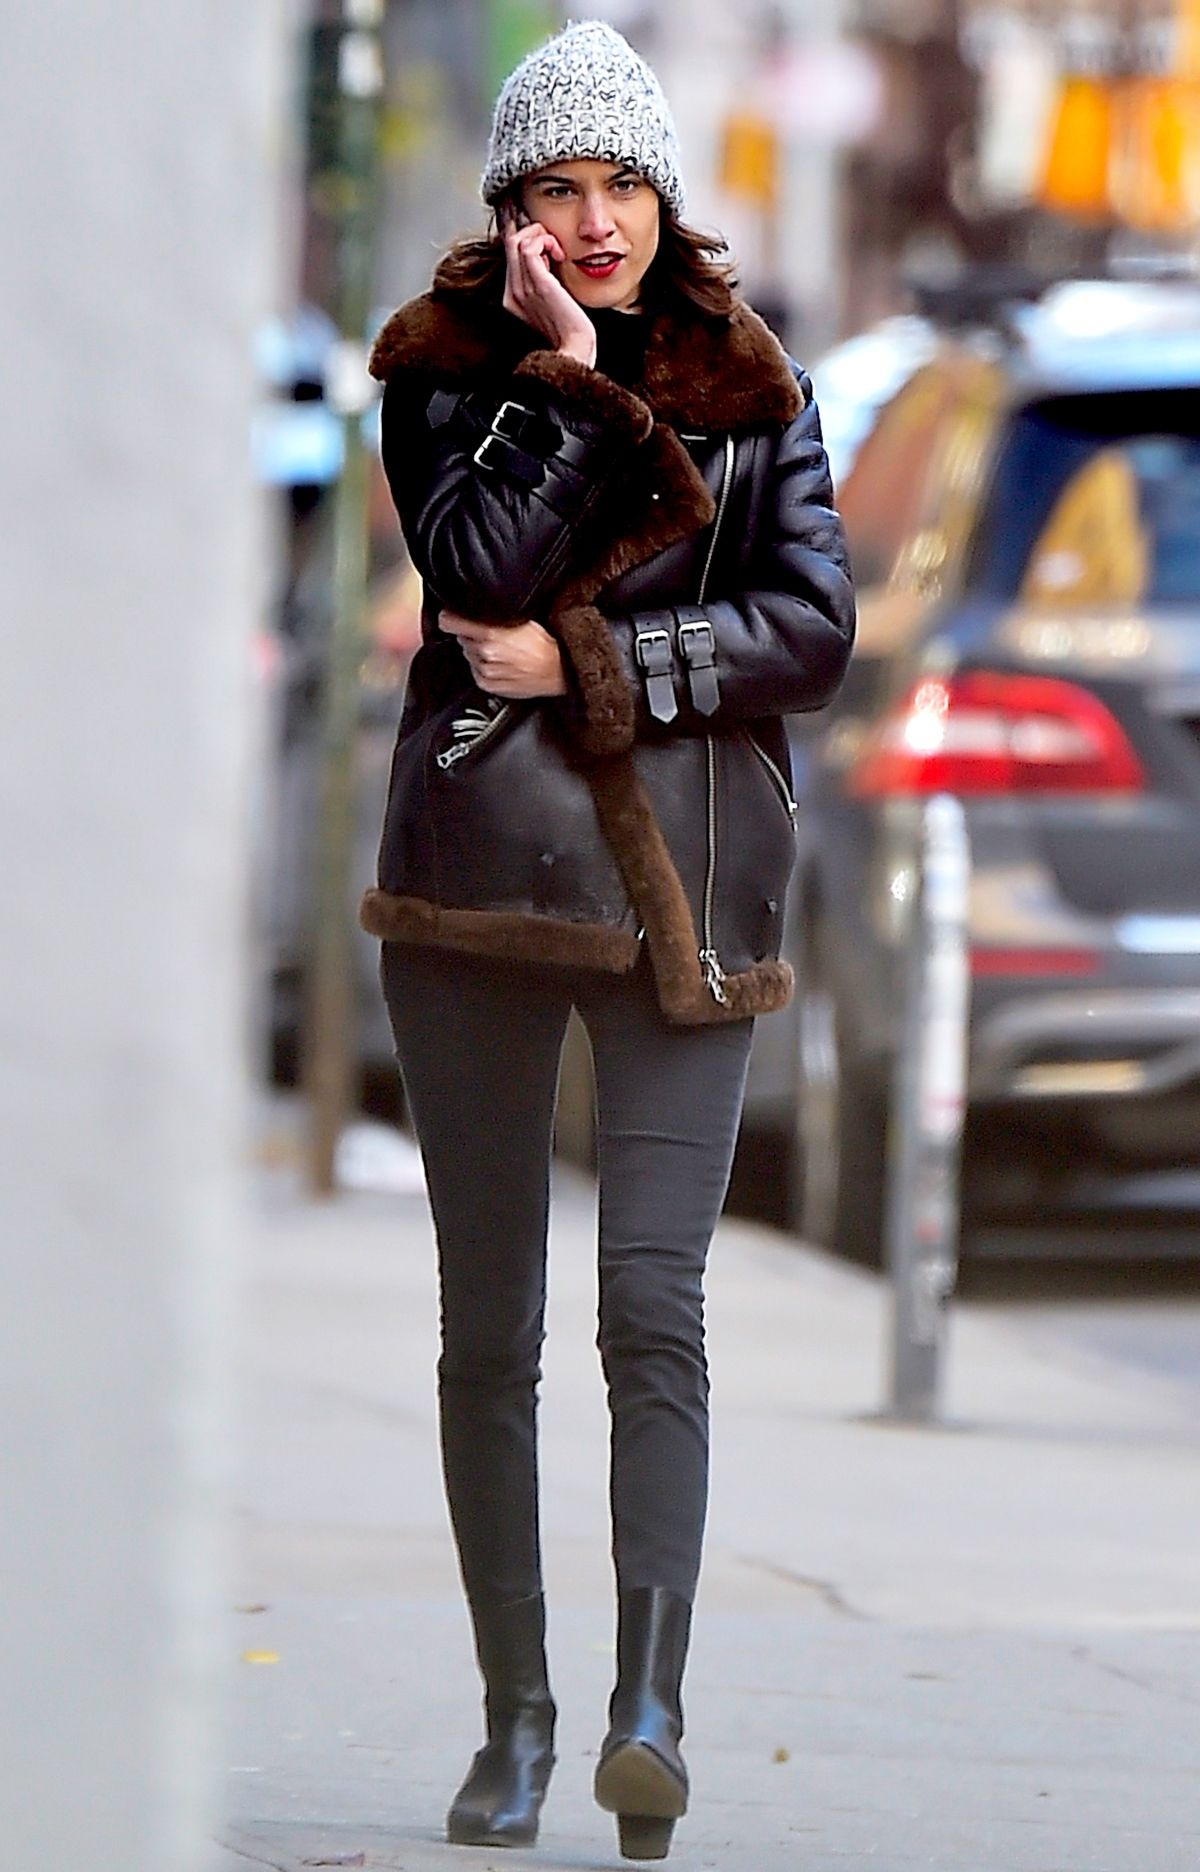 496b9640f2771 From SJP to Em Rata, Celebs Still Love Wearing These Iconic '00s Jeans    WhoWhatWear.com   Bloglovin'